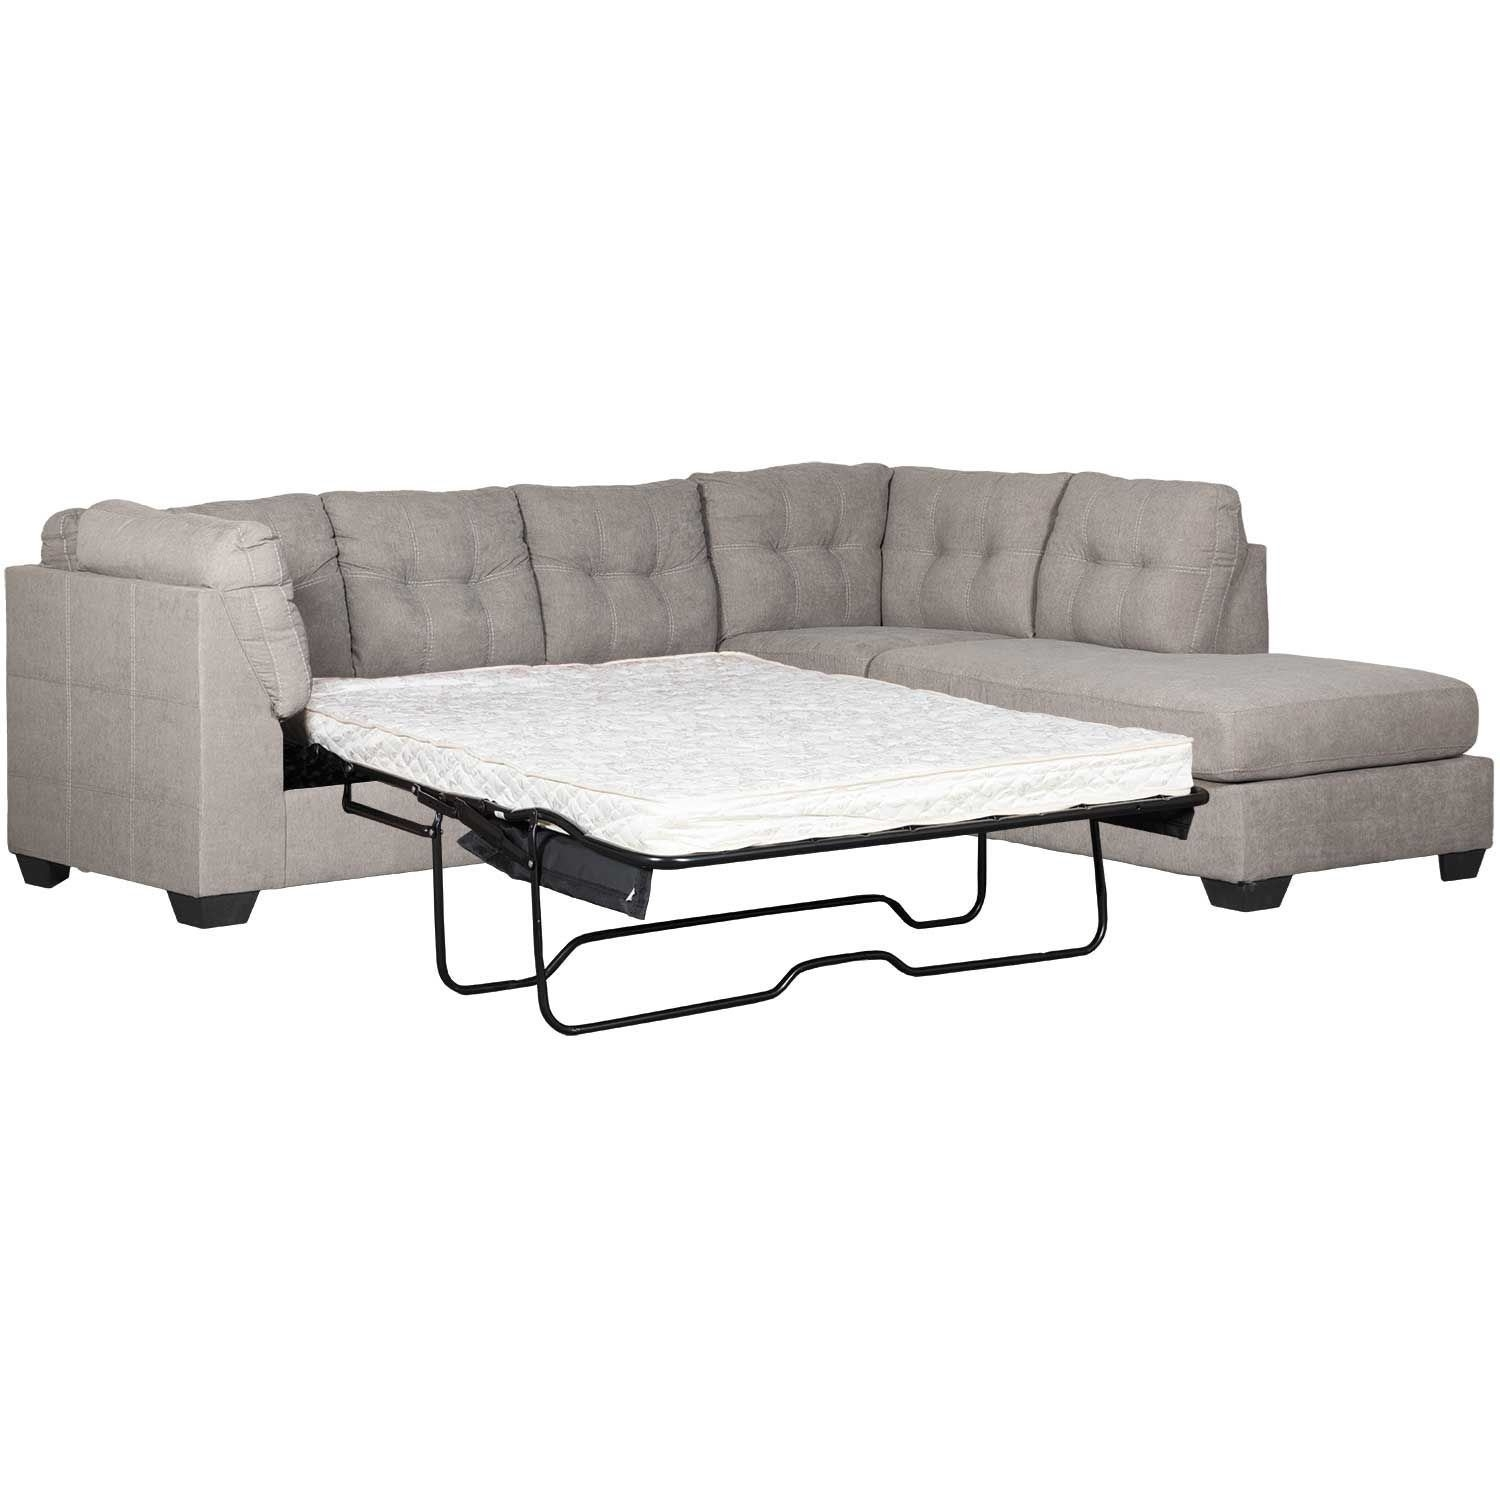 Maier Charcoal 2 Piece Sleeper Sectional With Raf Chaise | 4520017 Pertaining To Meyer 3 Piece Sectionals With Raf Chaise (Image 15 of 25)